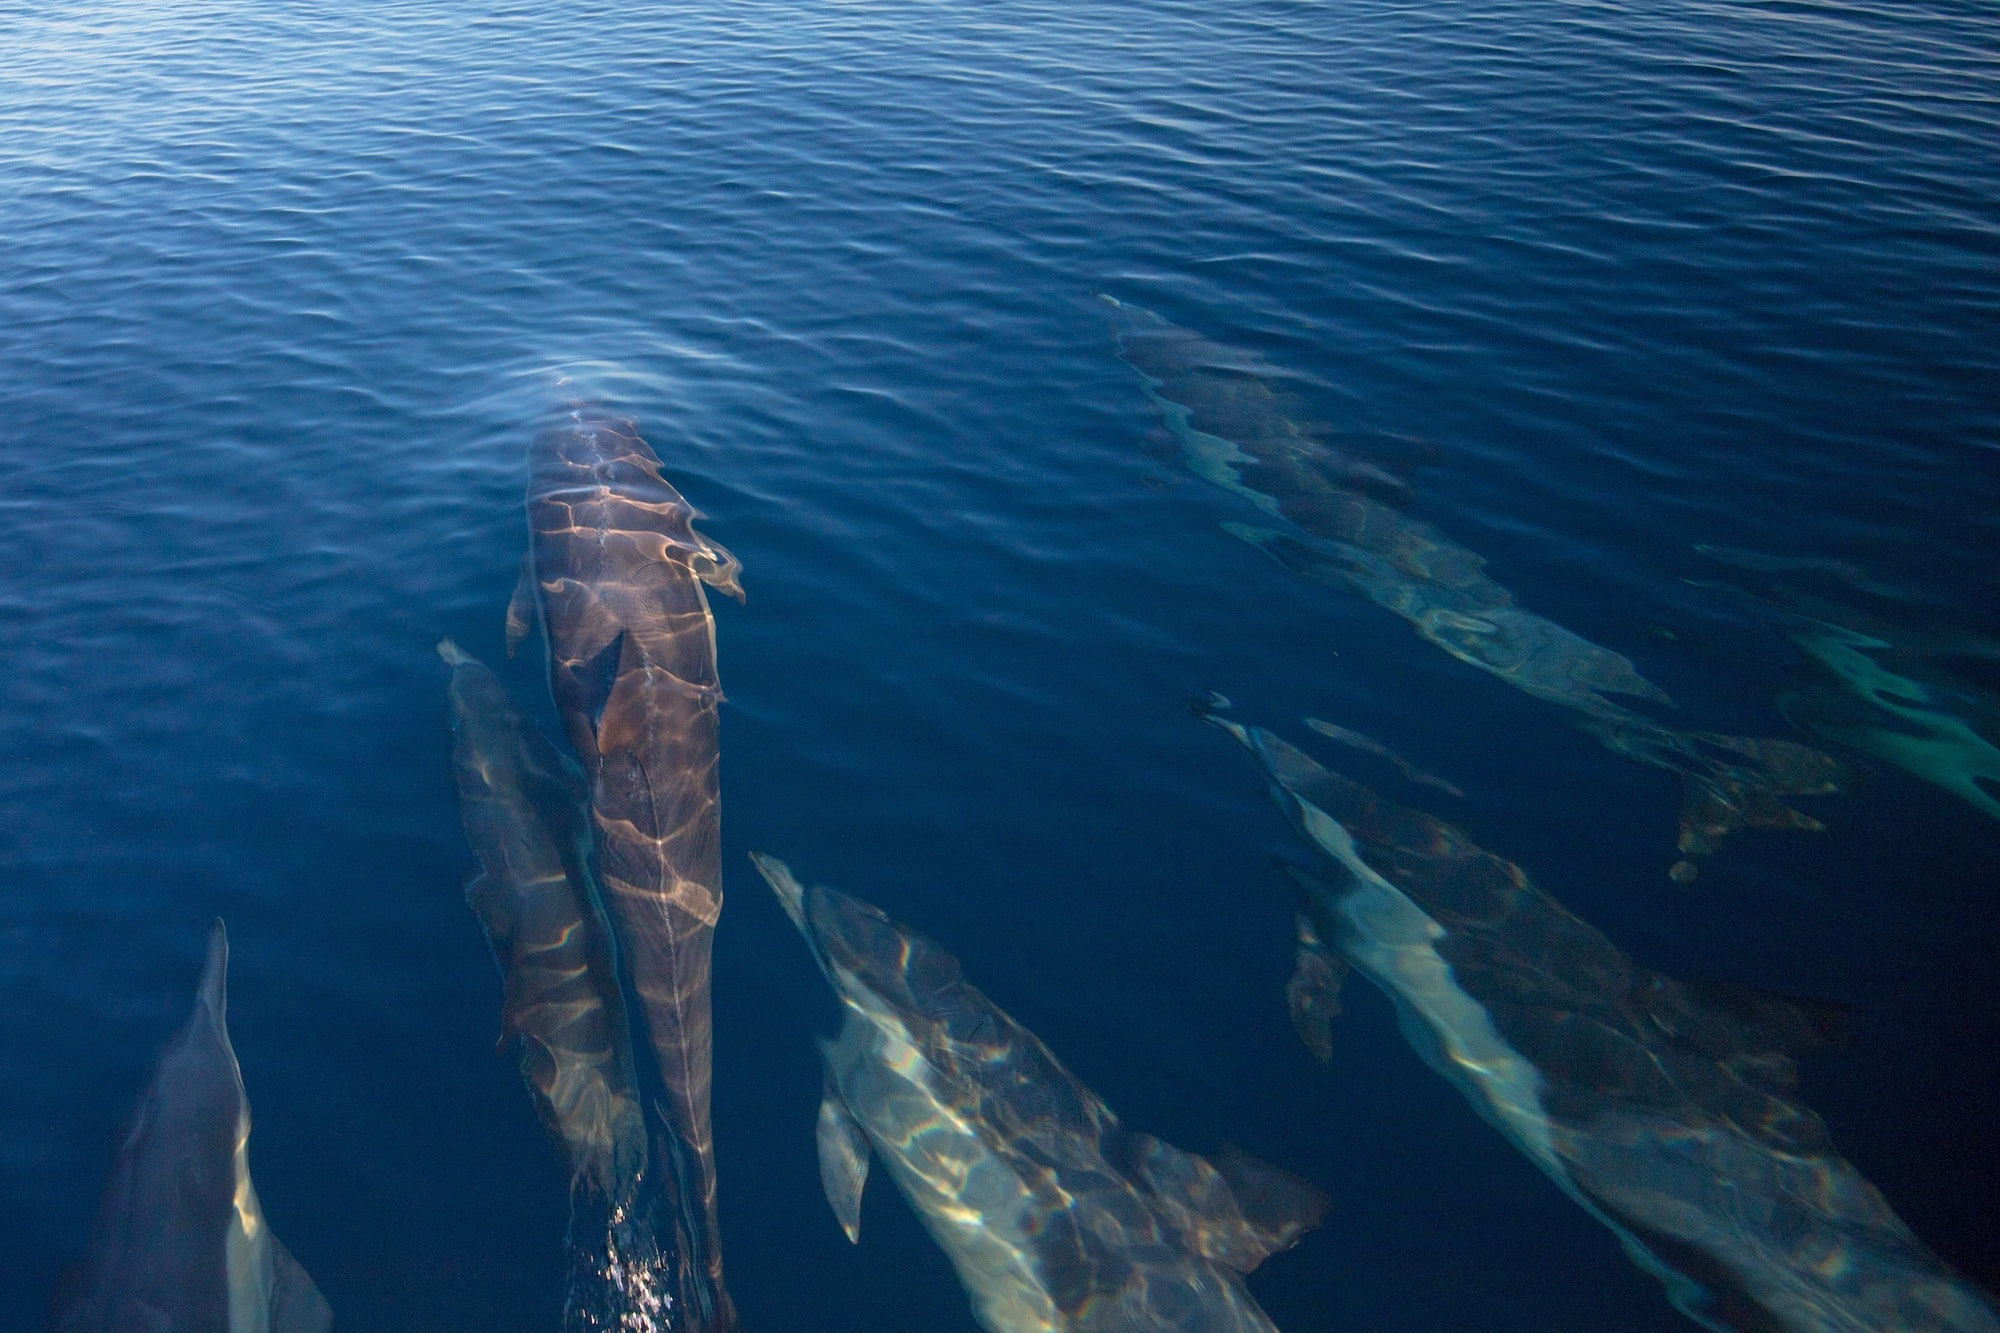 Dolphins in Channel Islands National Park // Get the scoop on camping, hiking, marine life & outdoor adventure in this outdoor enthusiasts guide to the five islands of Channel Islands National Park.